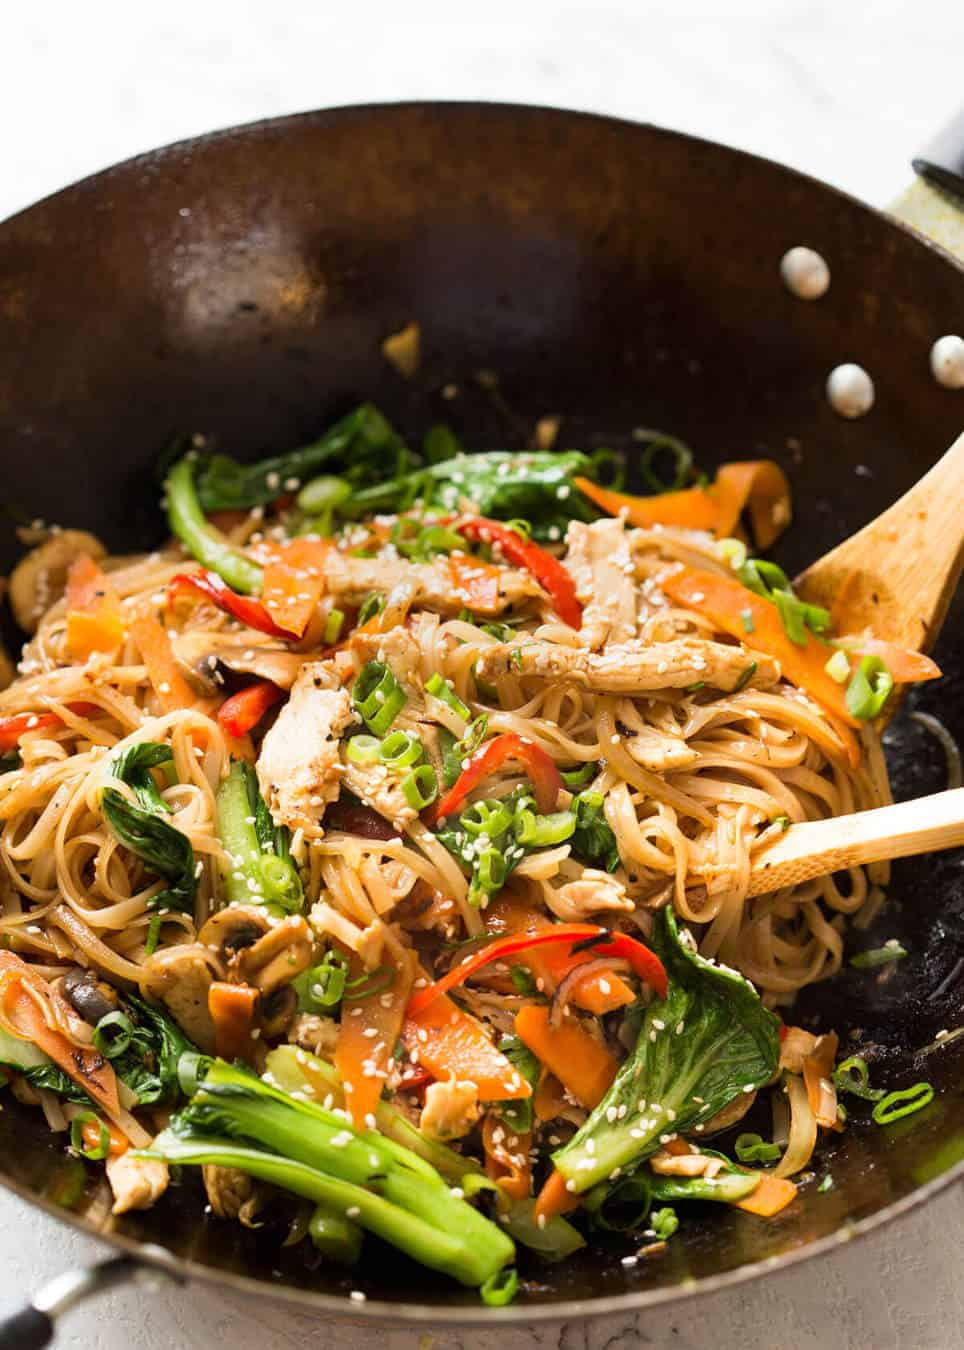 Chicken stir fry with rice noodles recipetin eats great fridge forage meal any dried noodles any veggies optional protein this forumfinder Choice Image